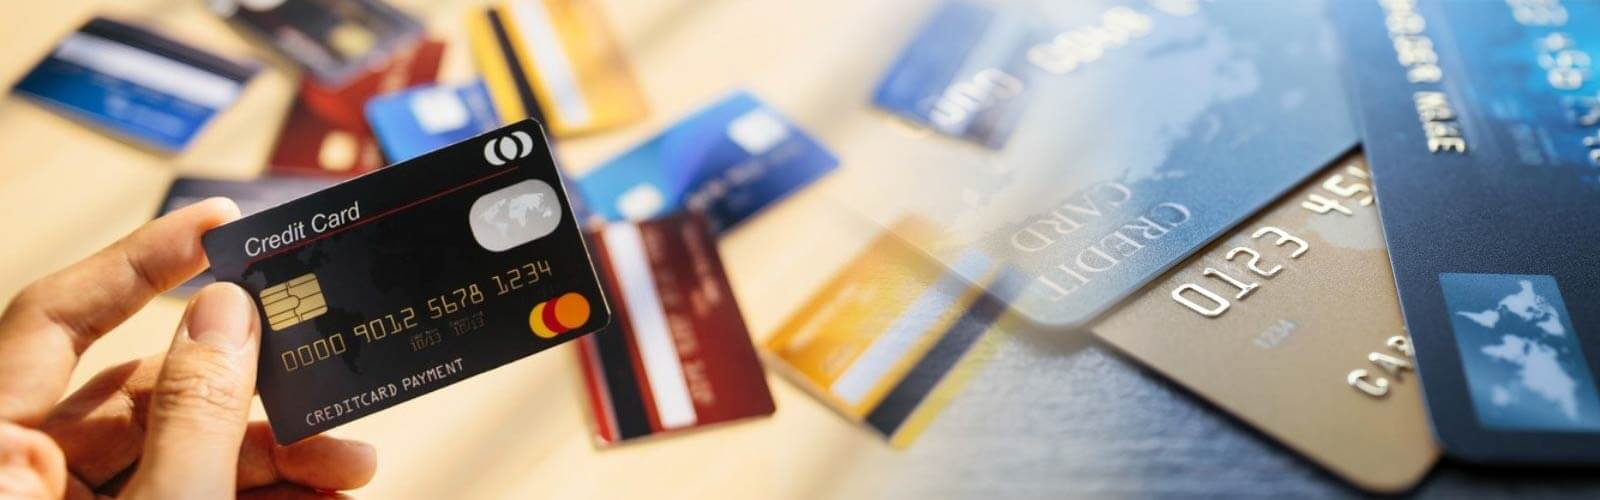 Credit-Cards-techsupport